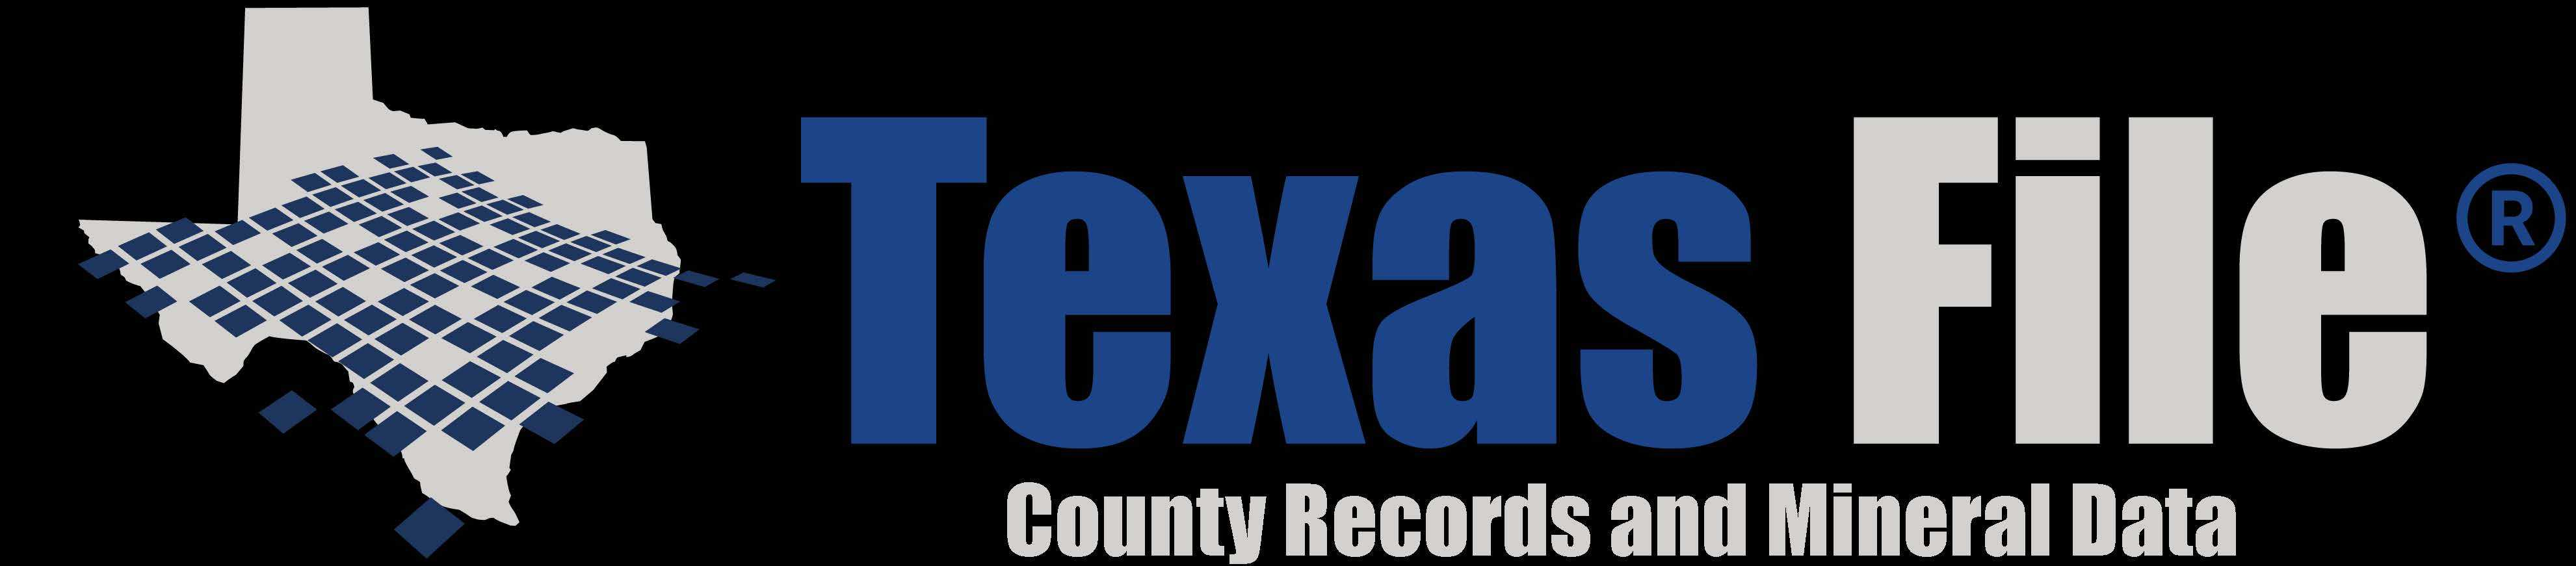 Texas File Horizontal Logo